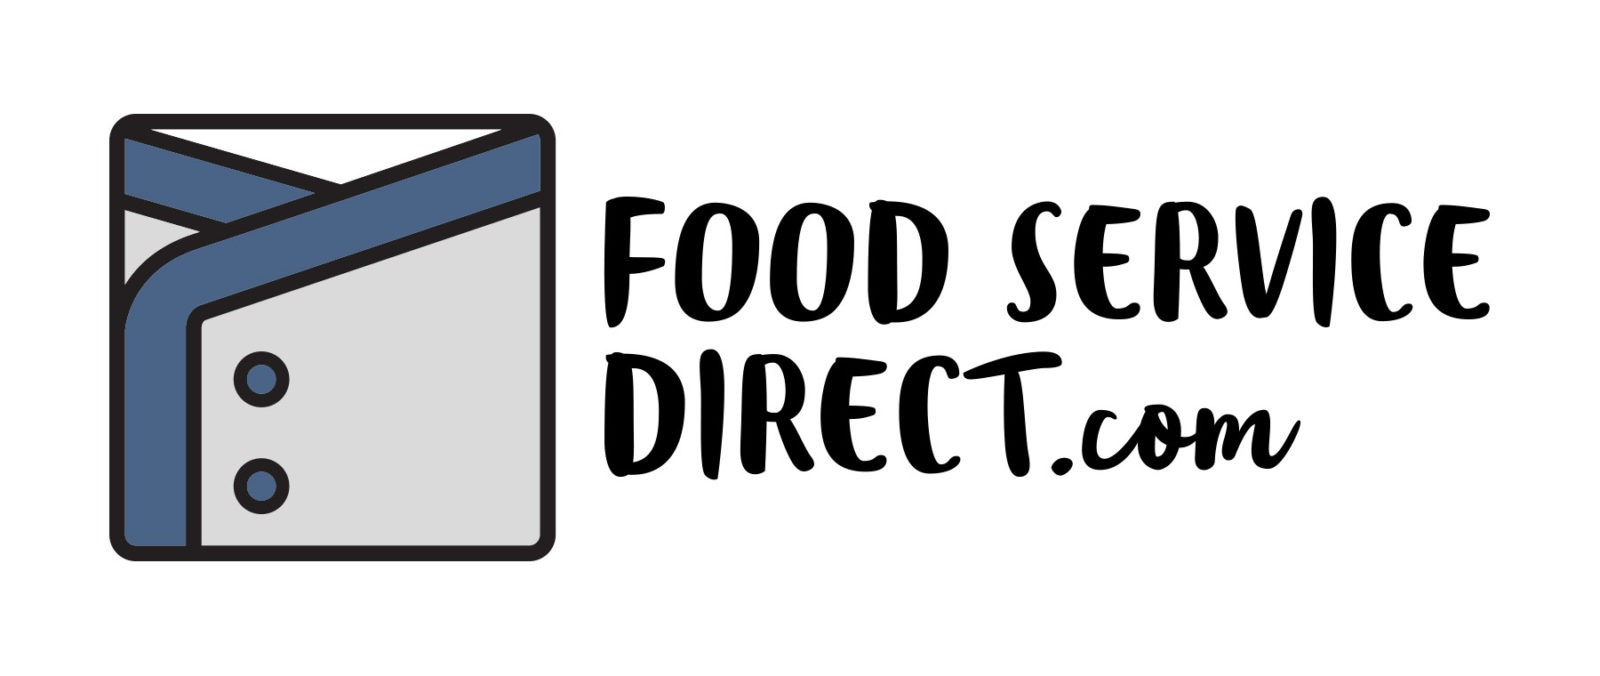 Food Service Direct logo